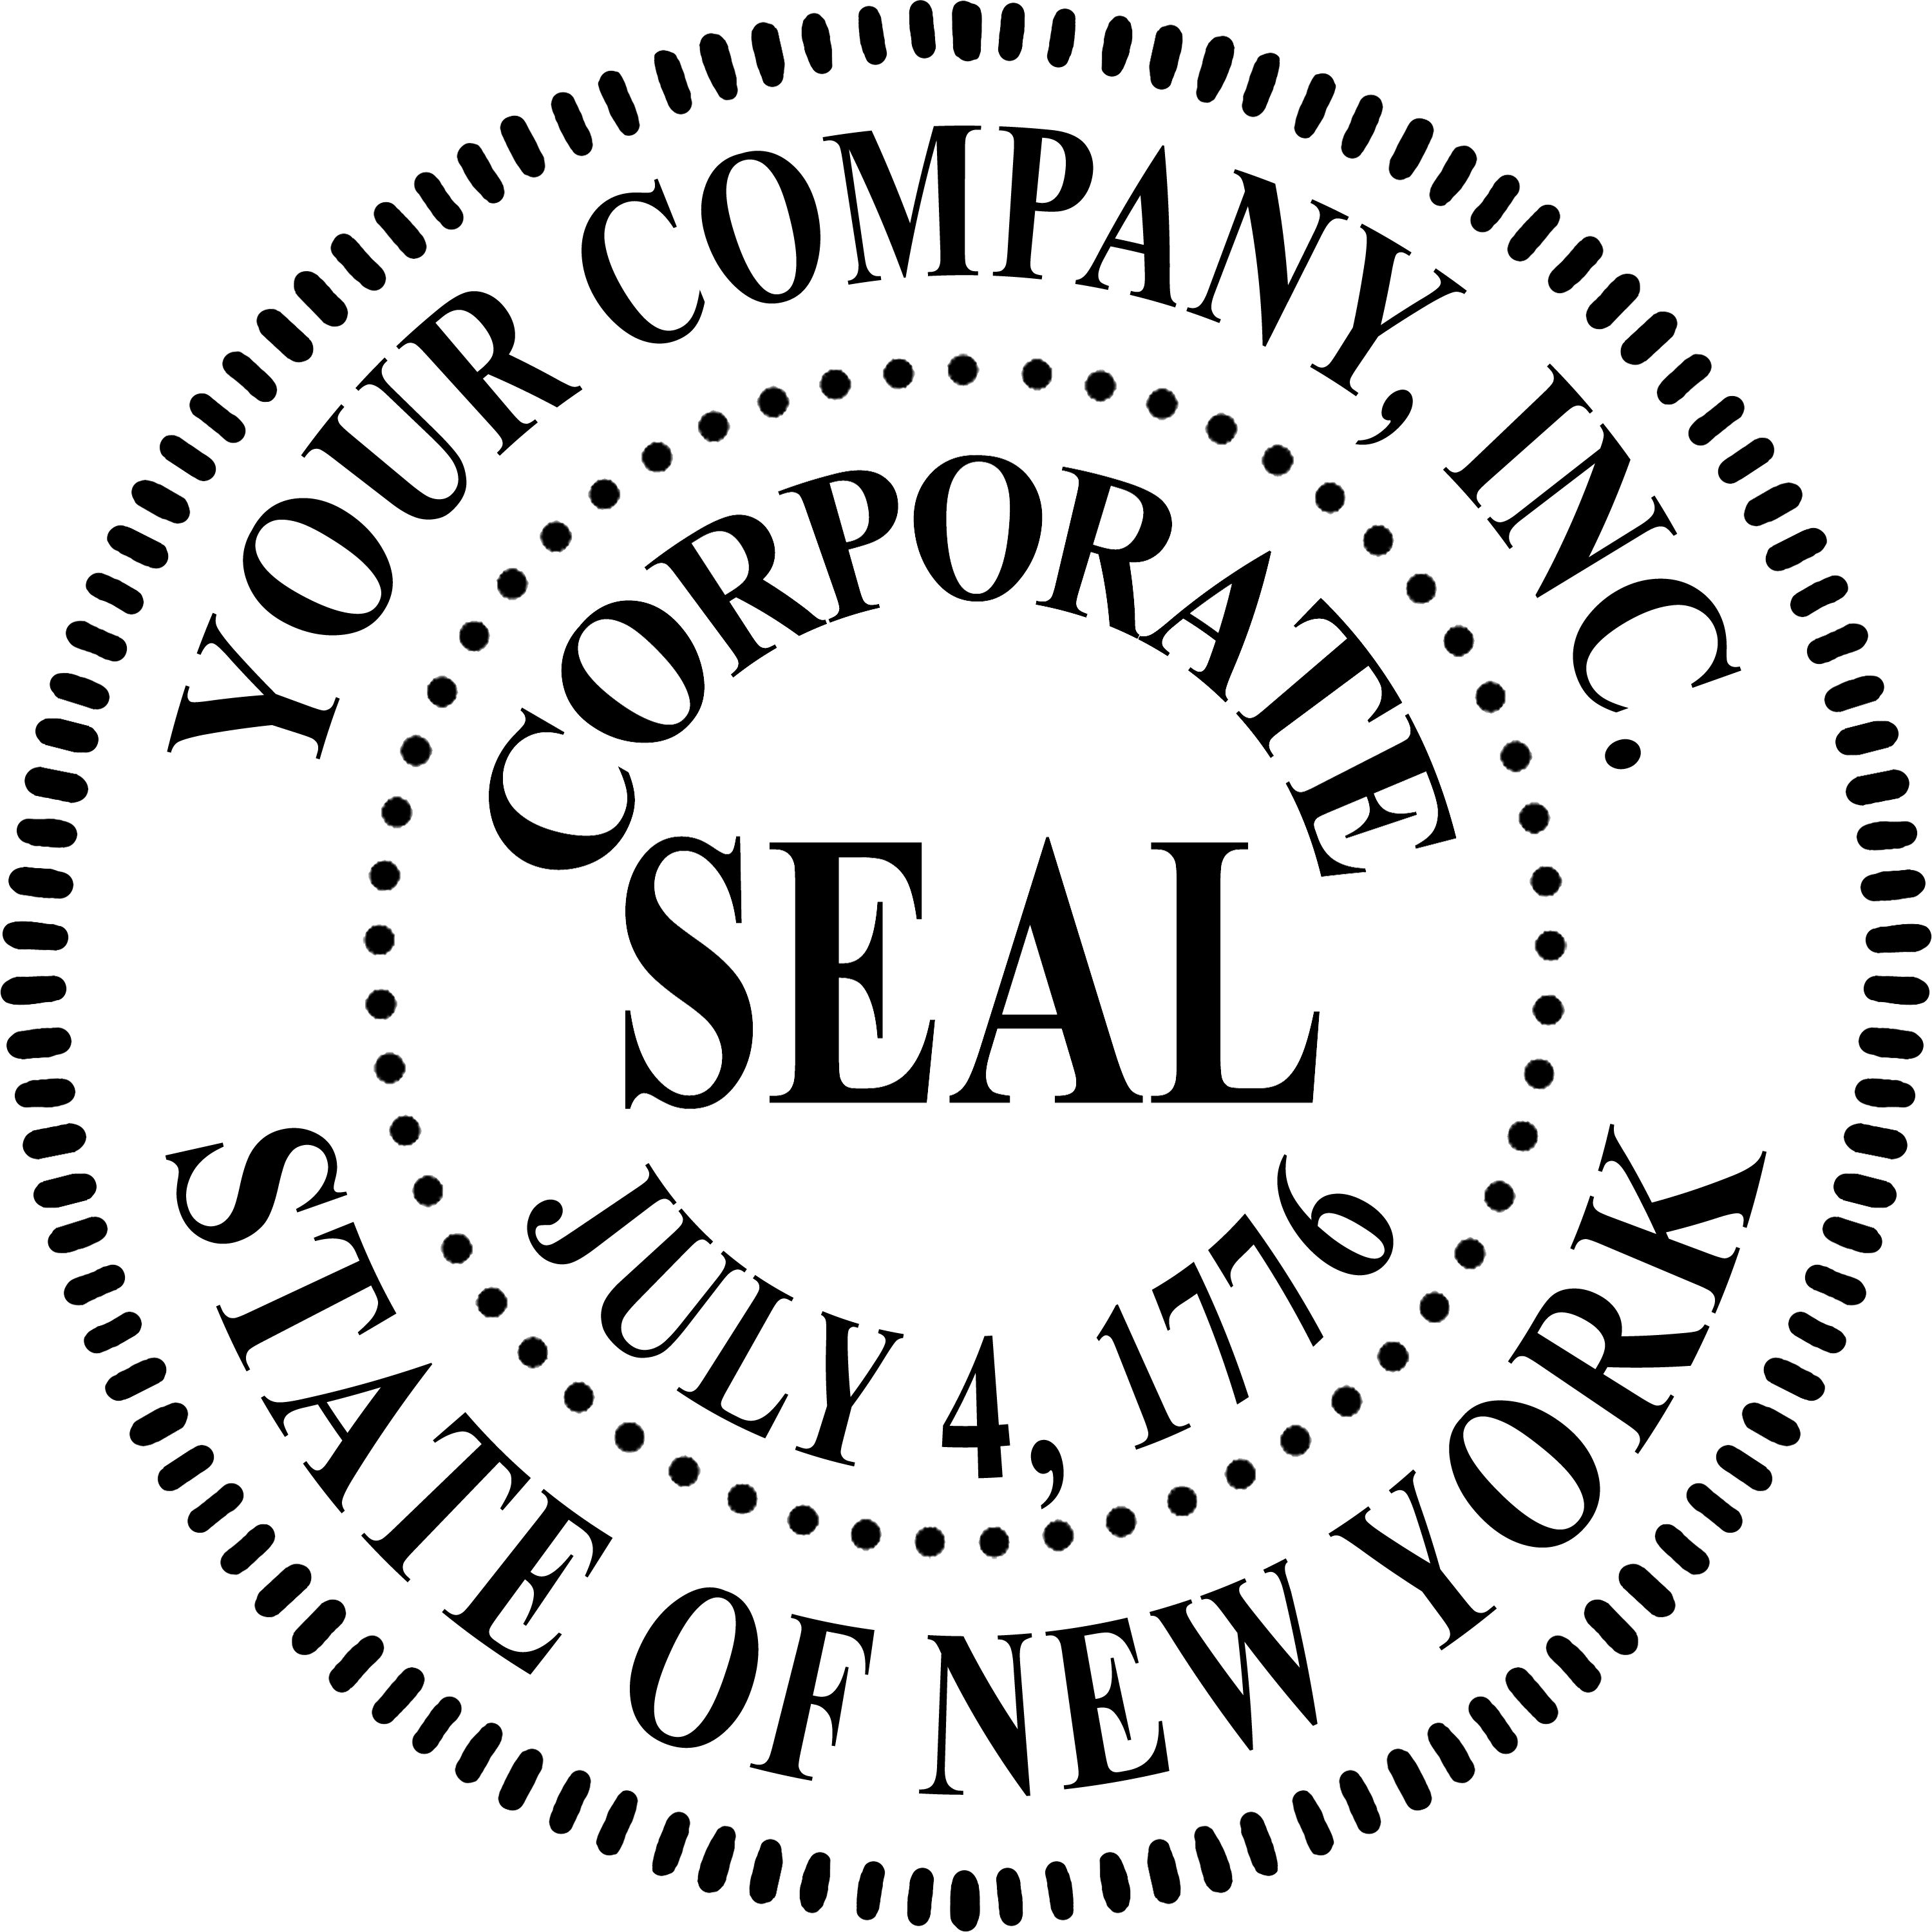 Blank Company Seal Template